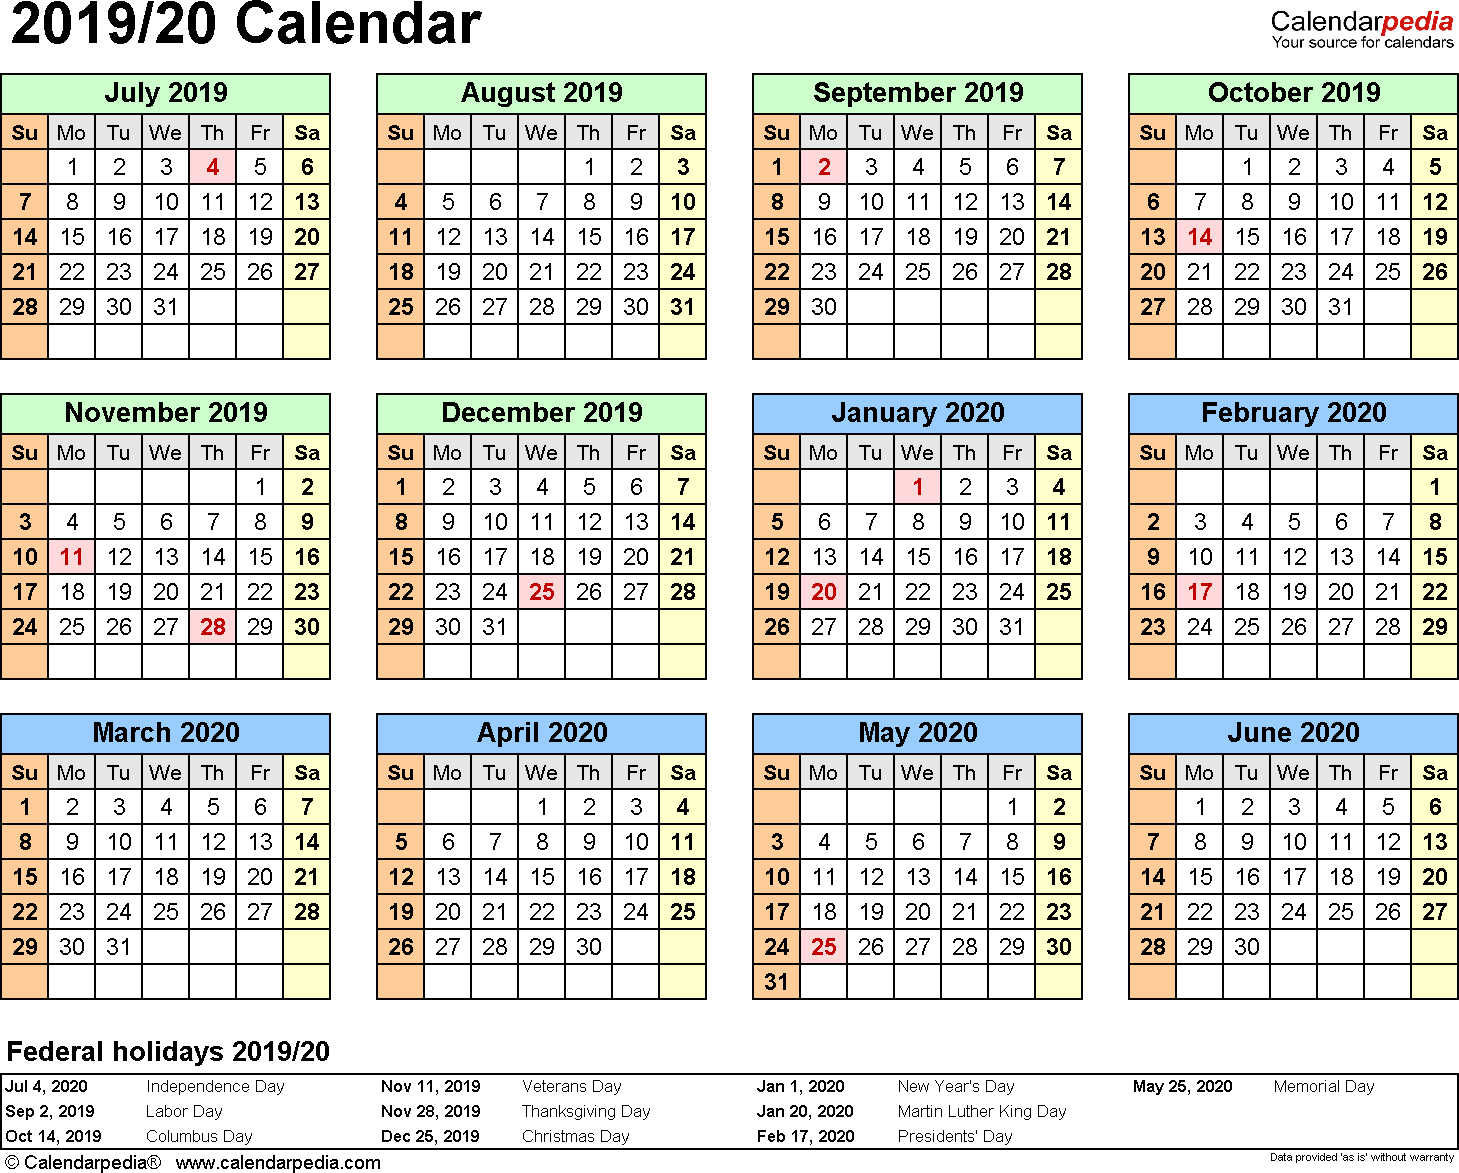 Split Year Calendar 2019/20 (July To June) - Word Templates in 2019/2020 Calander To Write On